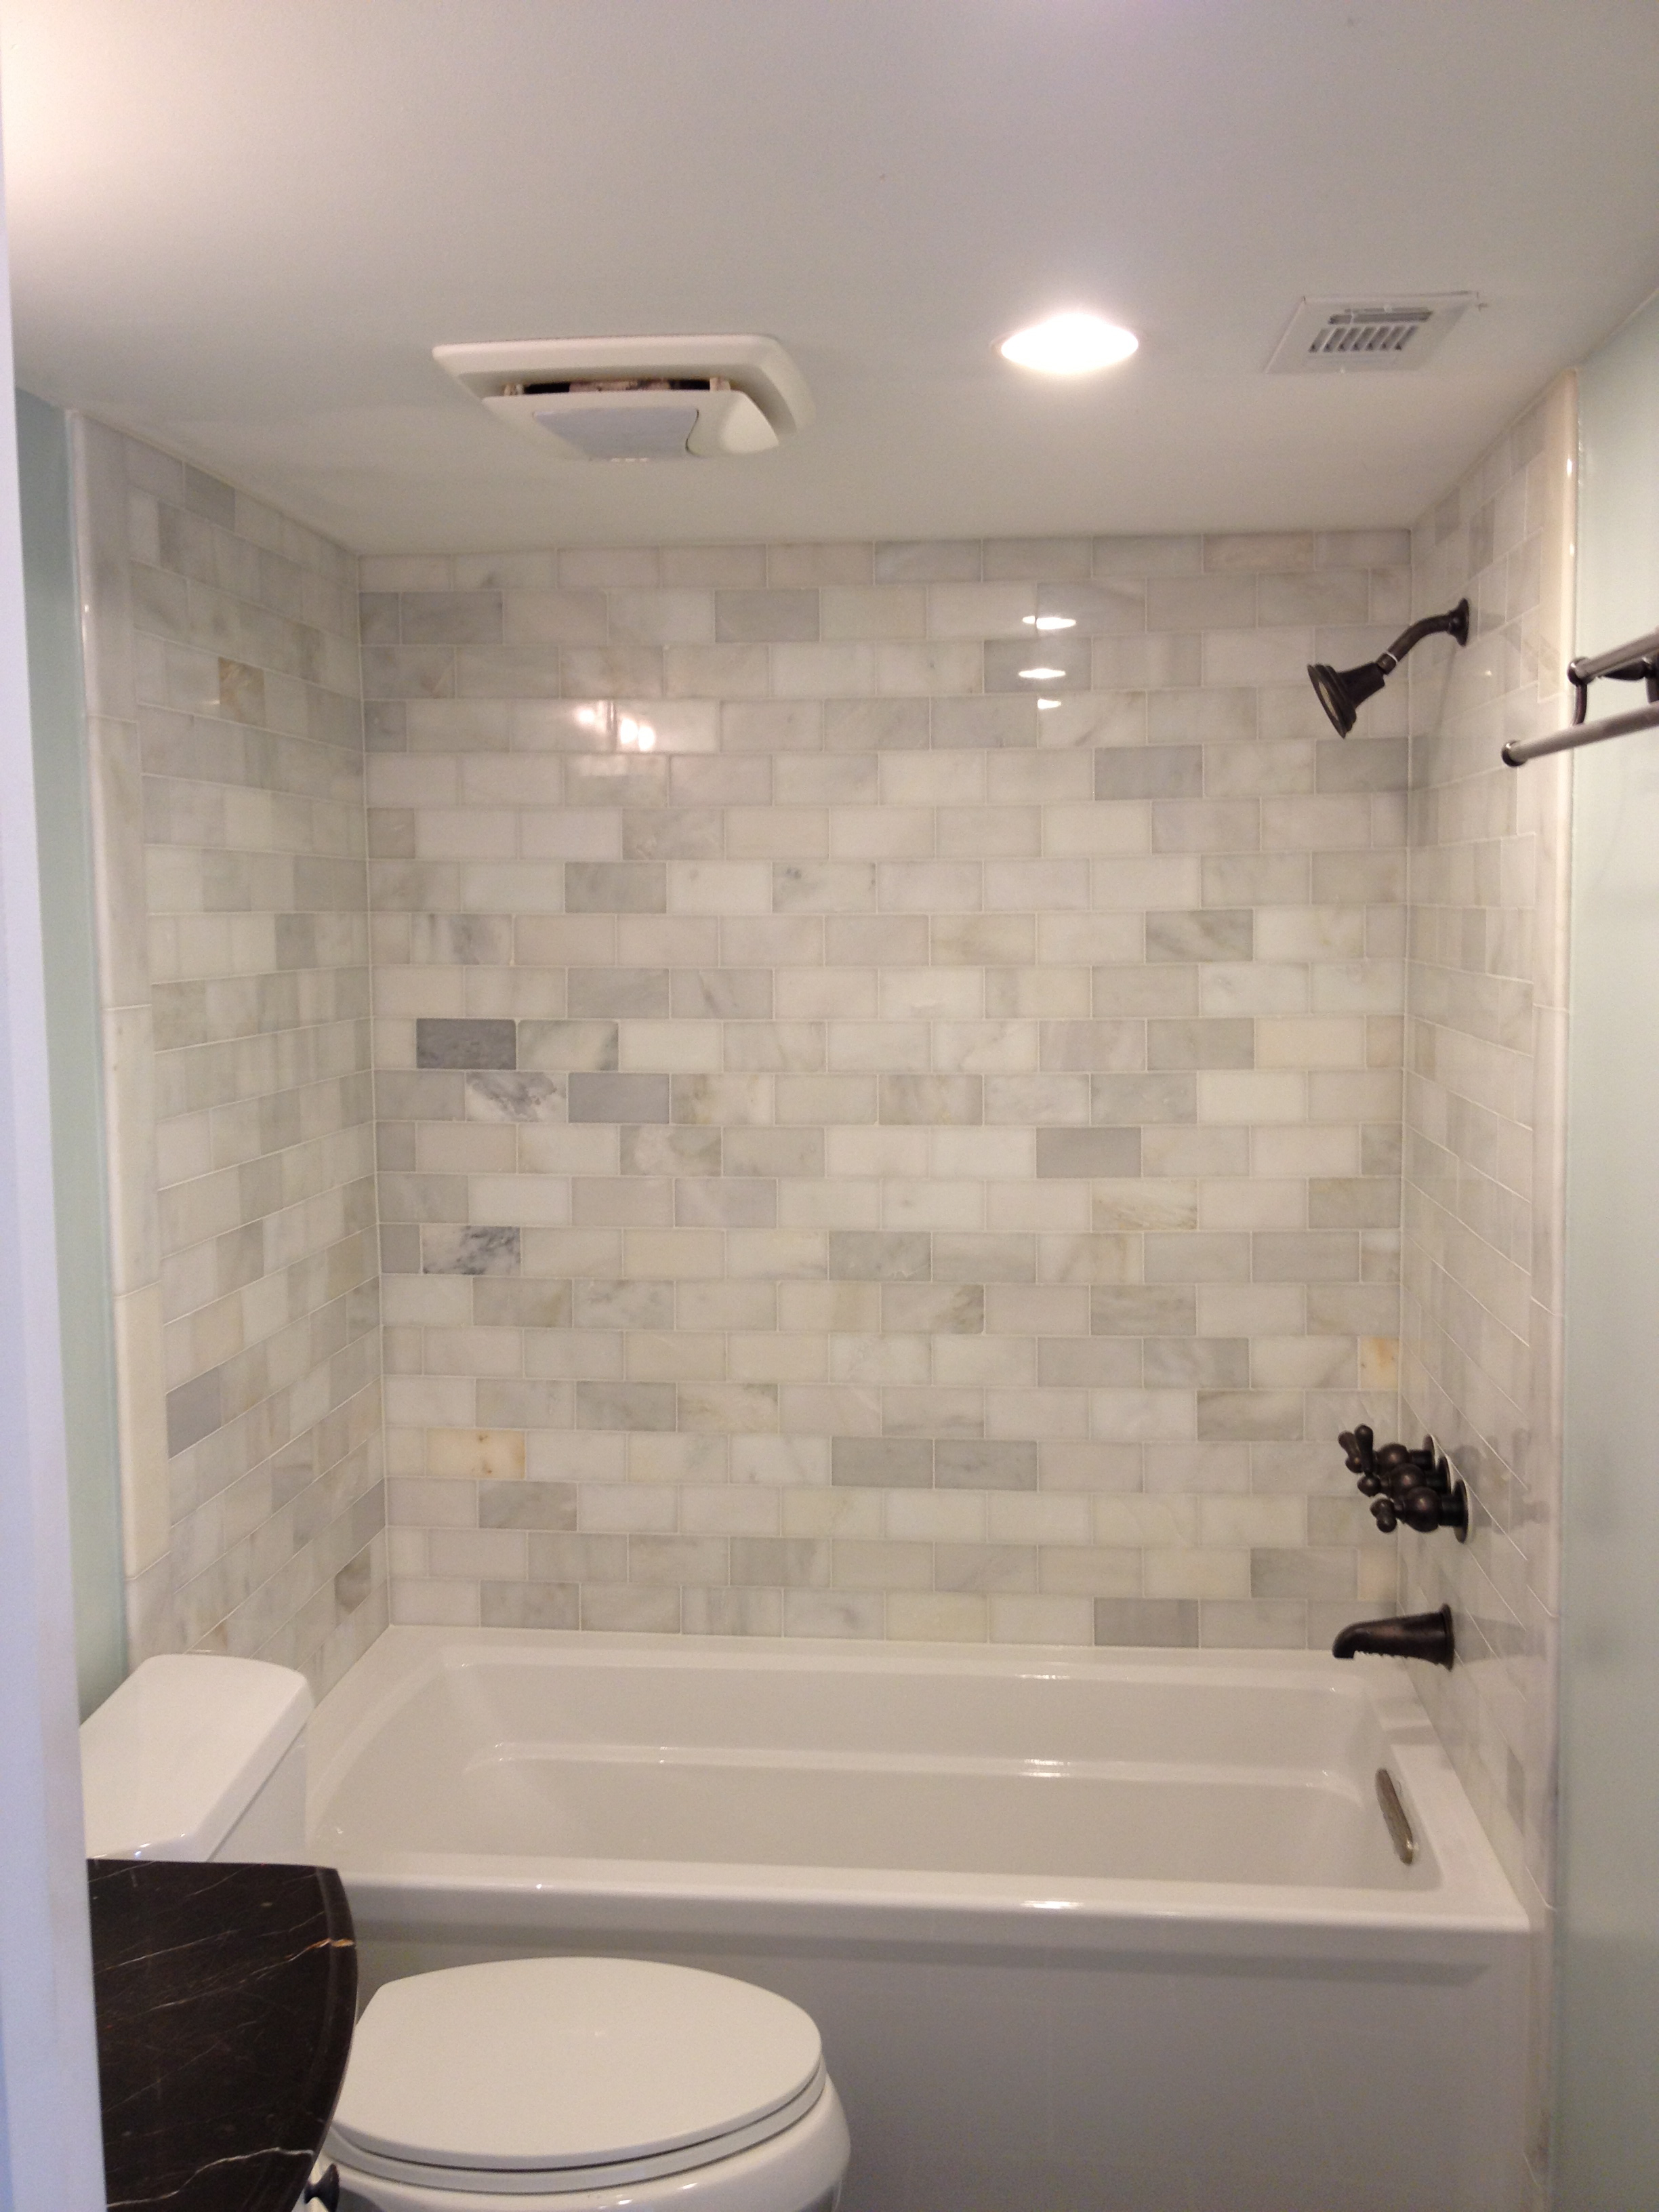 Bathroom Remodeling Maryland Bathroom Remodeling In Chevy Chase Md & Washington Dc  Melness .